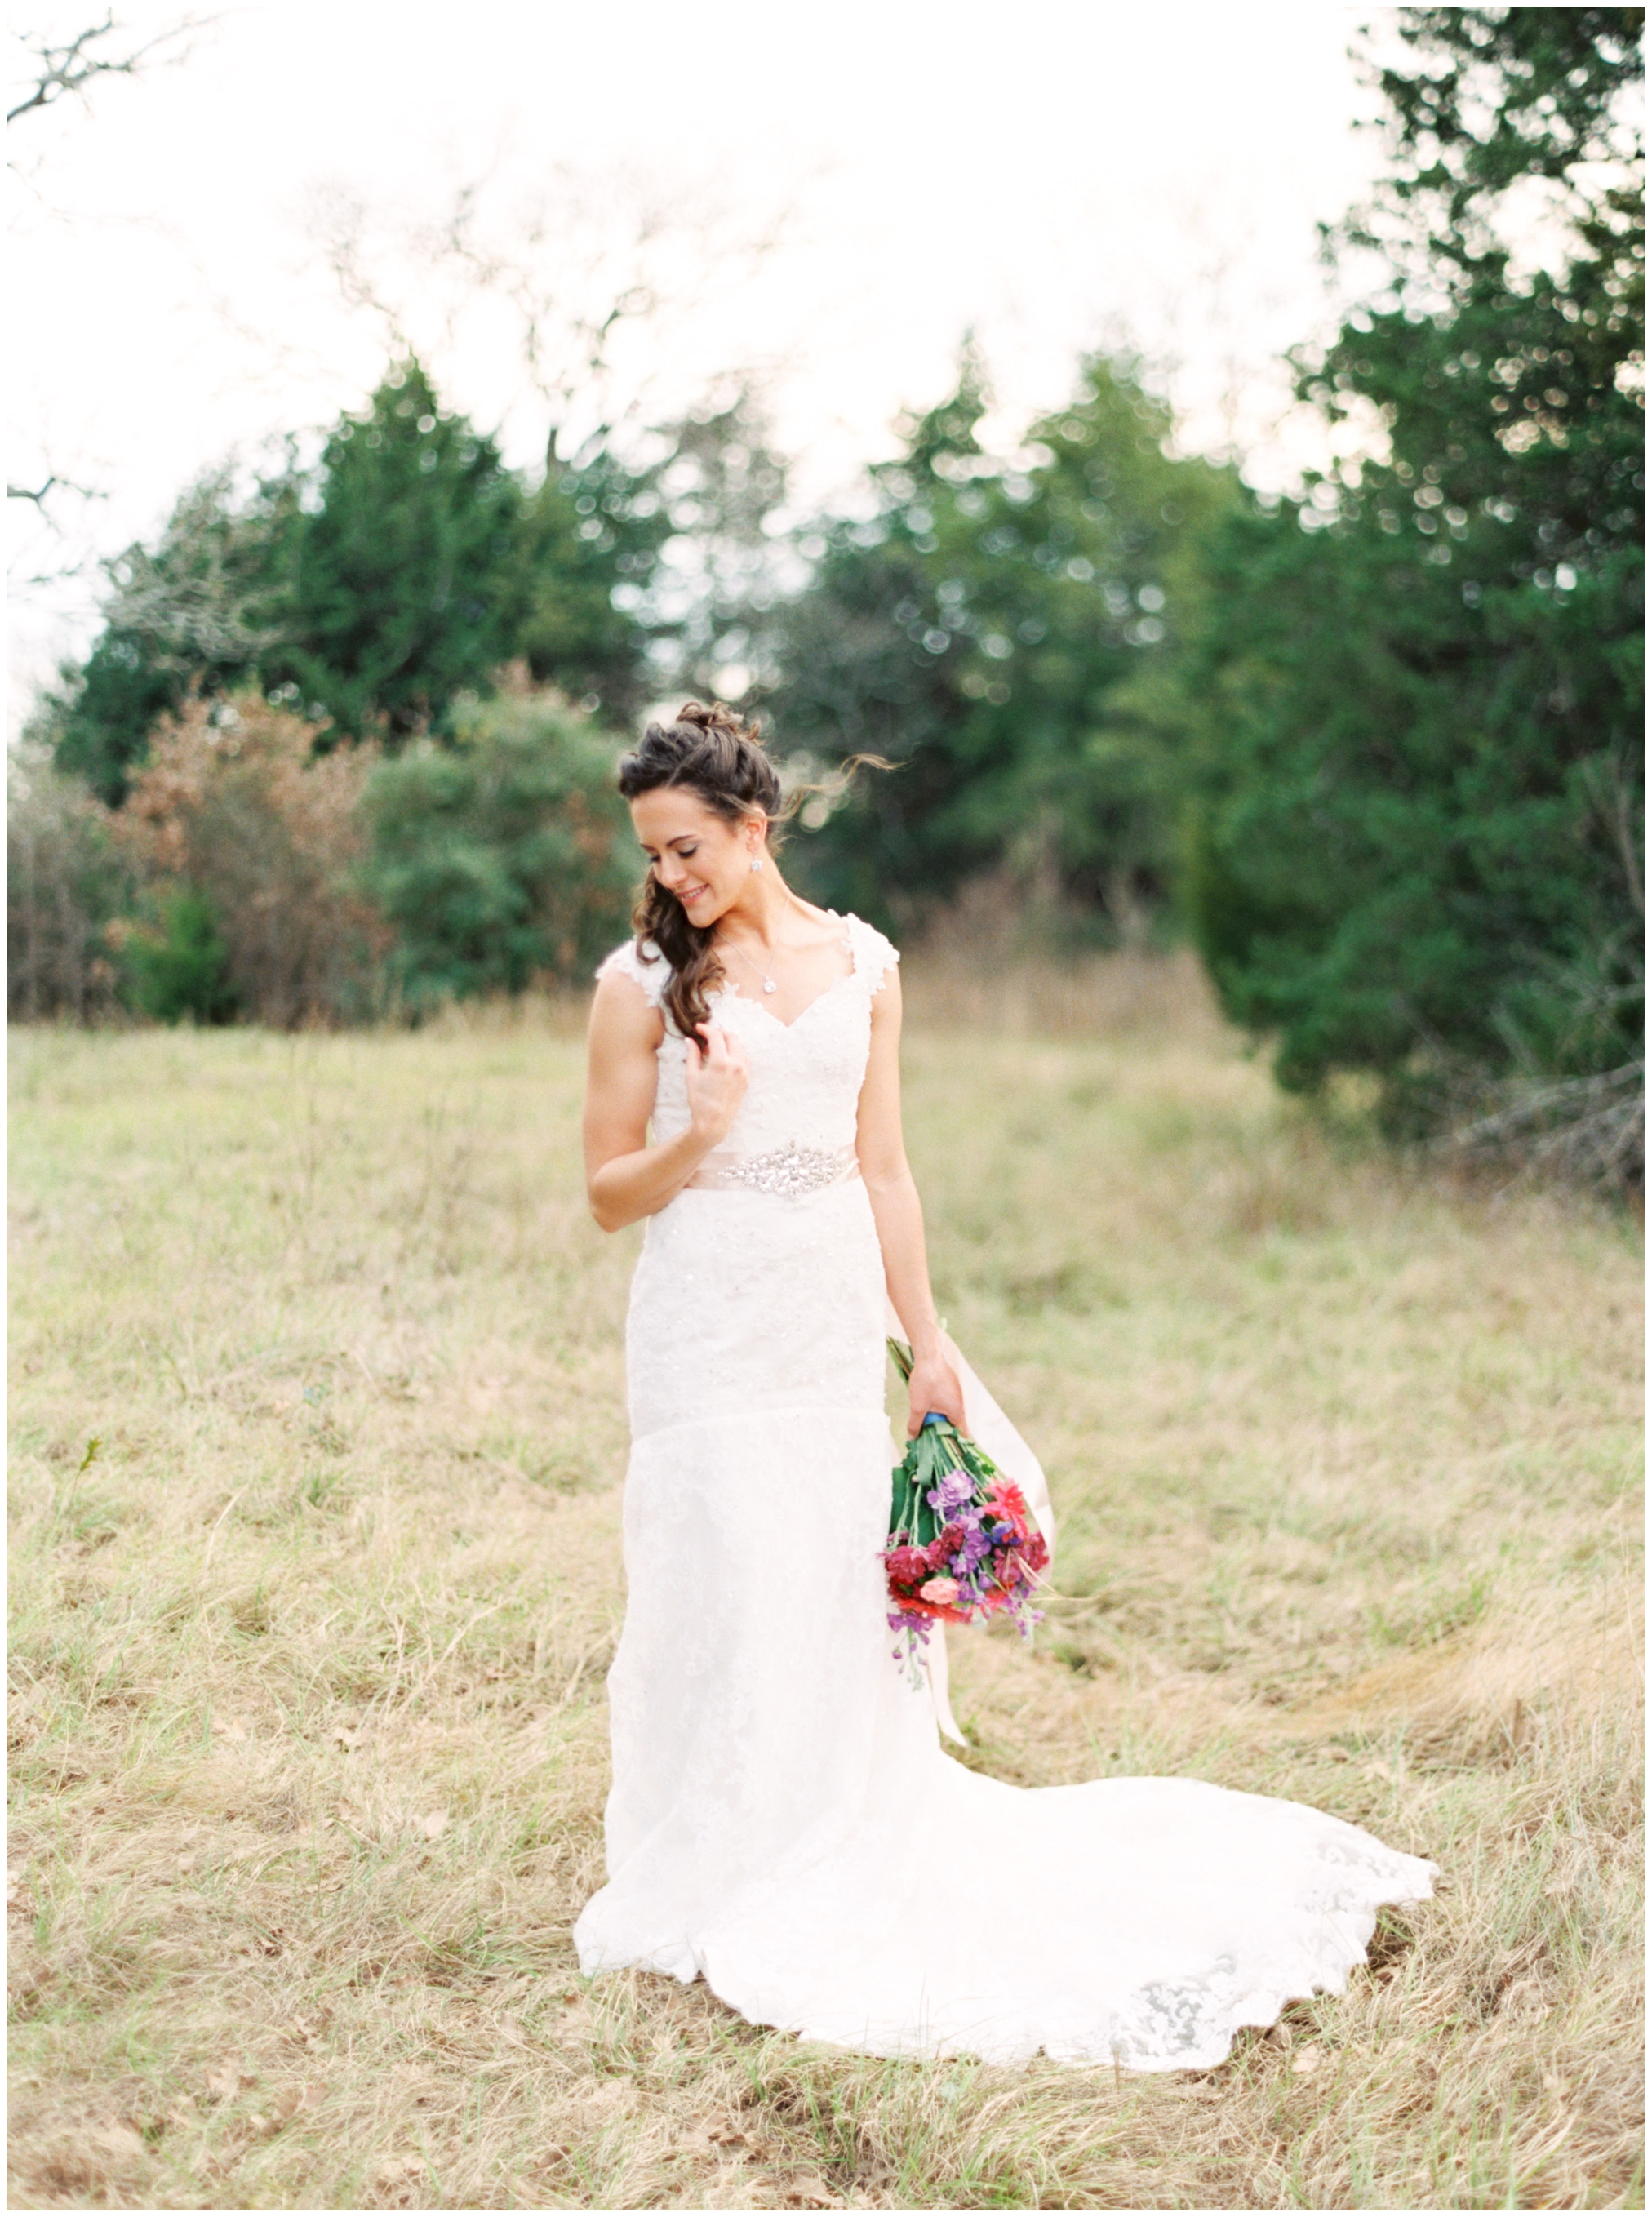 Sarah Best Photography - Emily's Bridals-120_STP.jpg